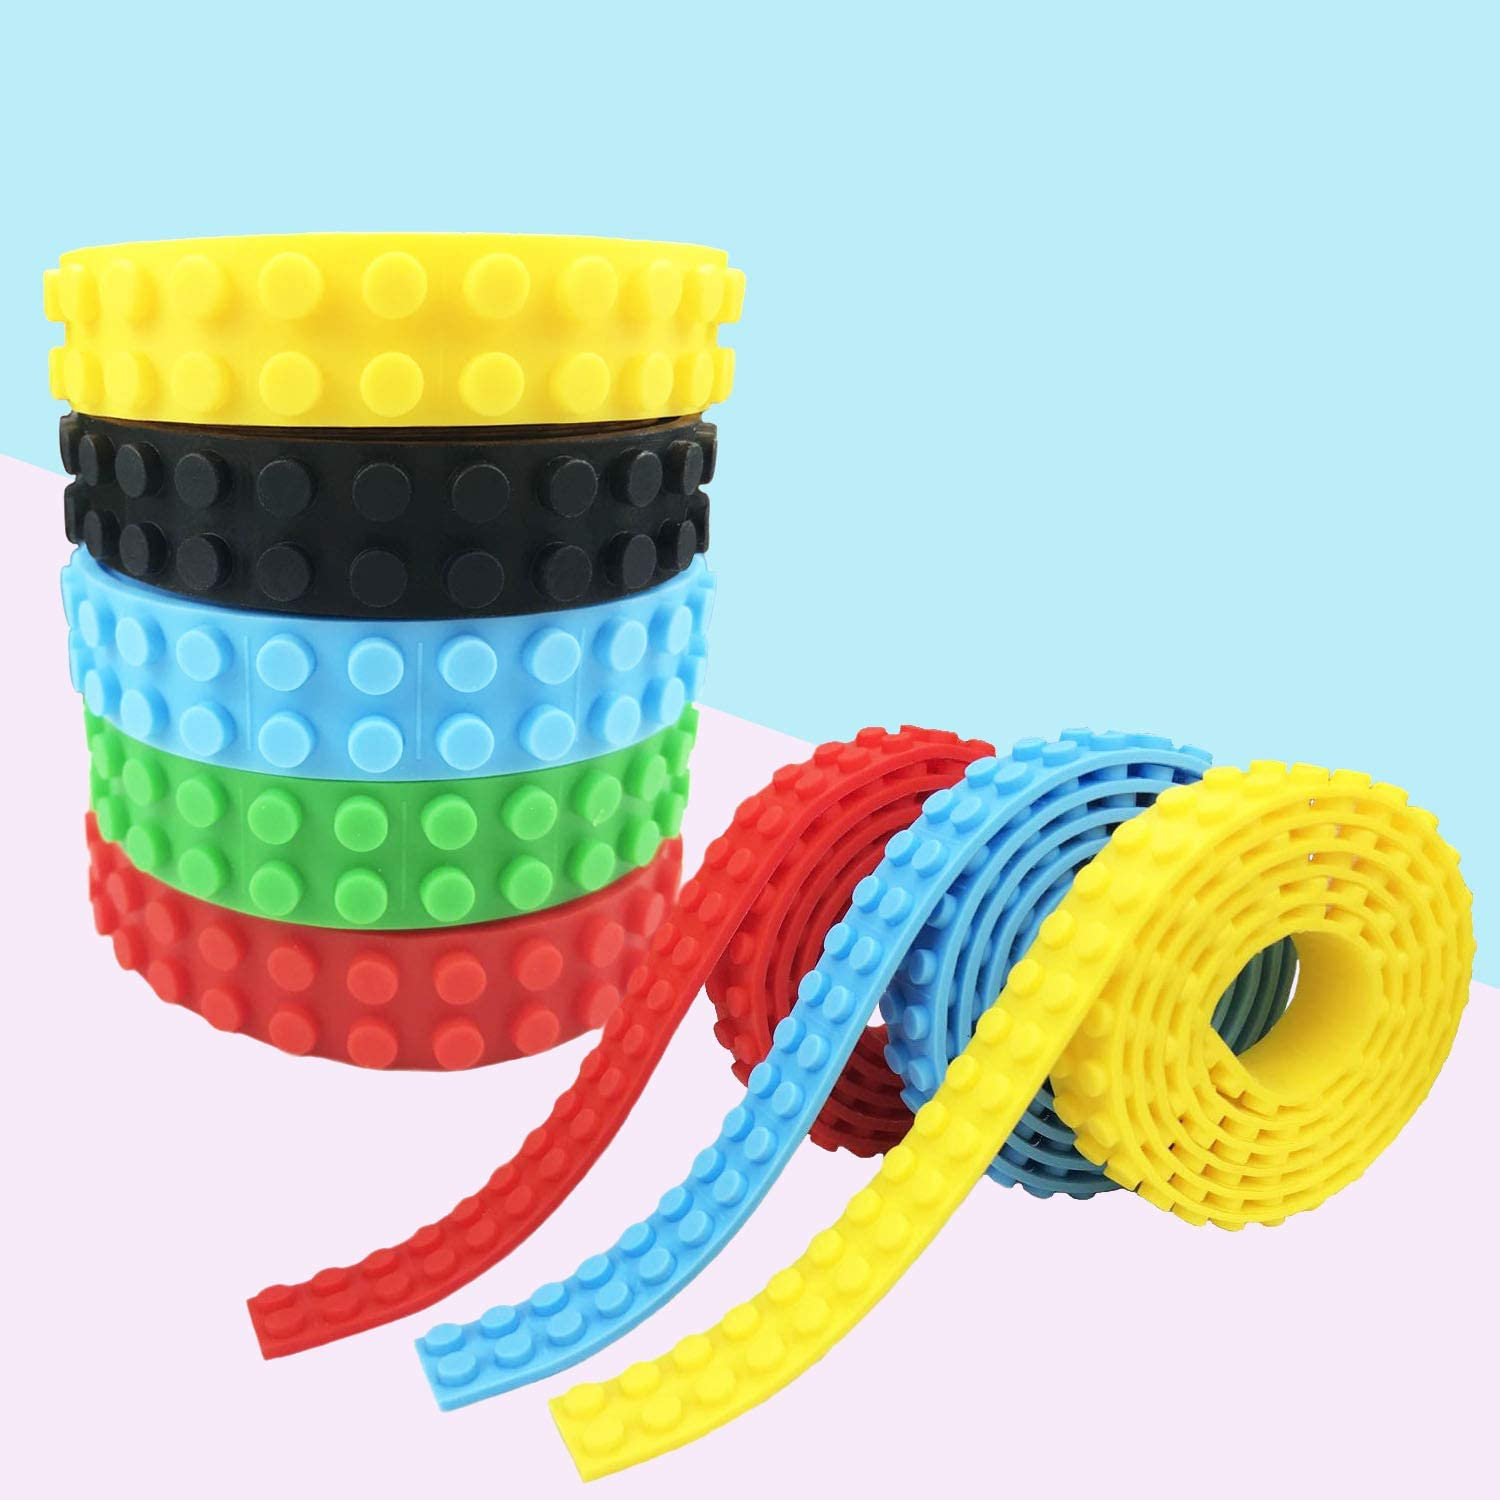 Makers R Us 6 Pack Stackable Building Base Plates 10 x 10 and 5 Self-Adhesive Block Tapes in Variety Color Compatible with All Major Brands